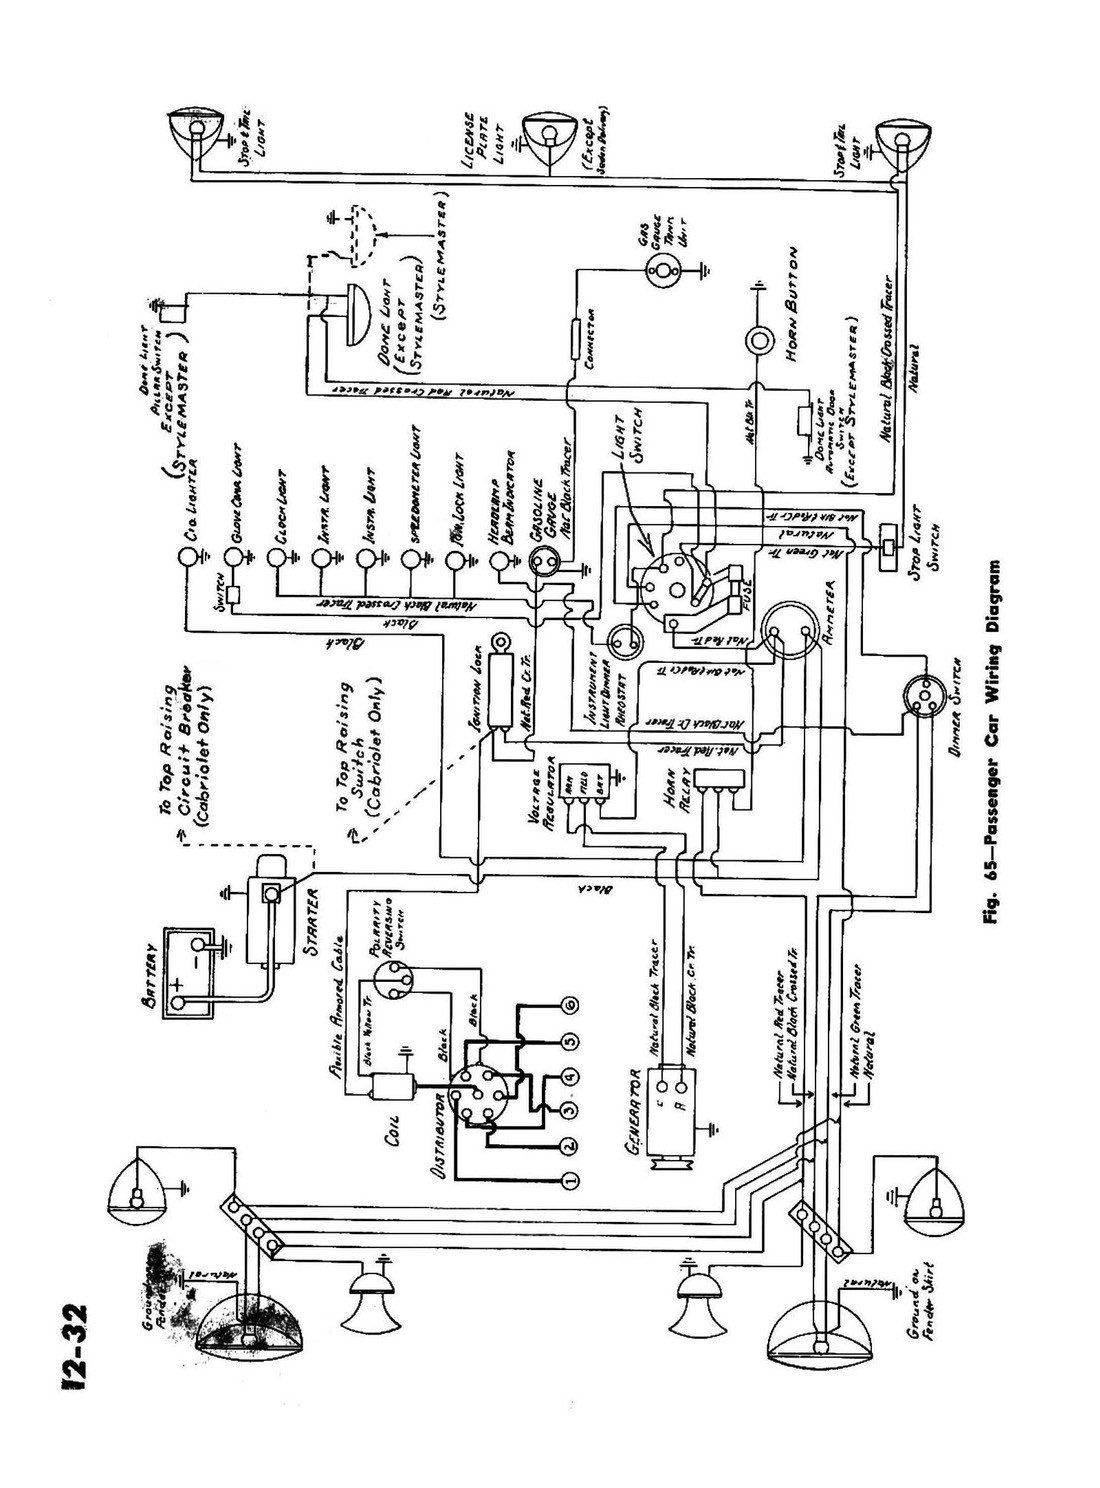 Wiring Diagram Electric Schematic Circuit Building Fancy ... on automobile icon, automobile outline, automobile art, automobile symbol, automobile sign, automobile line view, automobile drawing, automobile history,